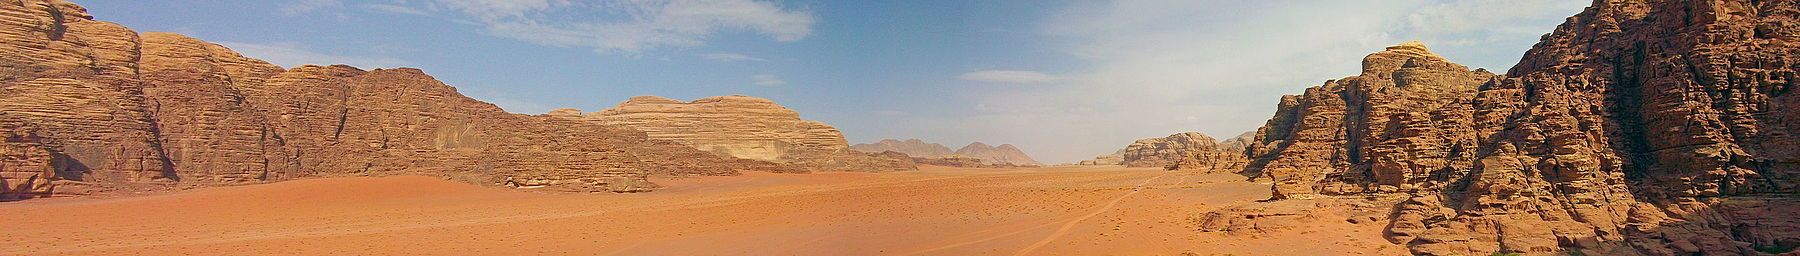 The mountains and distinctive red sands of Wadi Rum